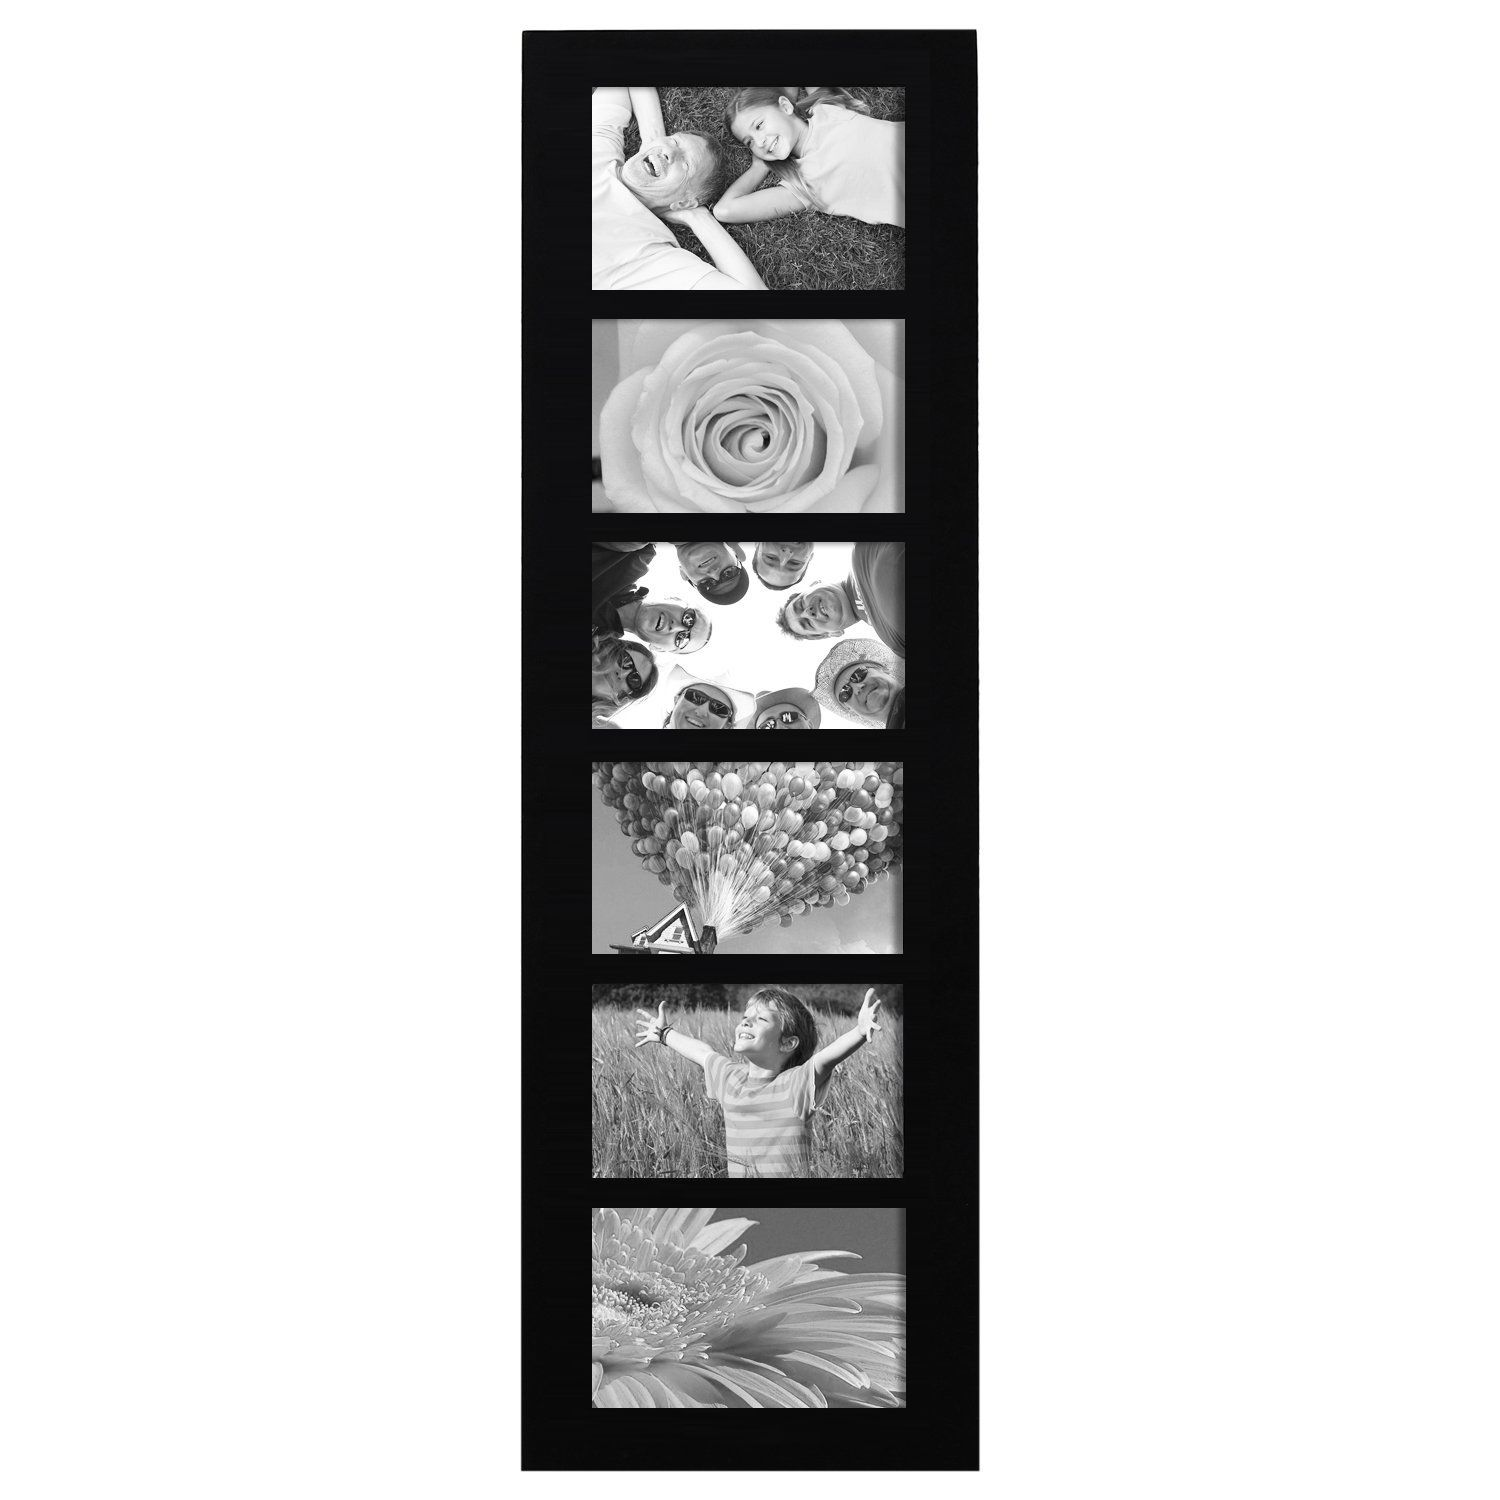 Adeco 6 Opening Collage Picture Frame Pf0167 Framed Photo Collage Hanging Picture Frames Collage Picture Frames